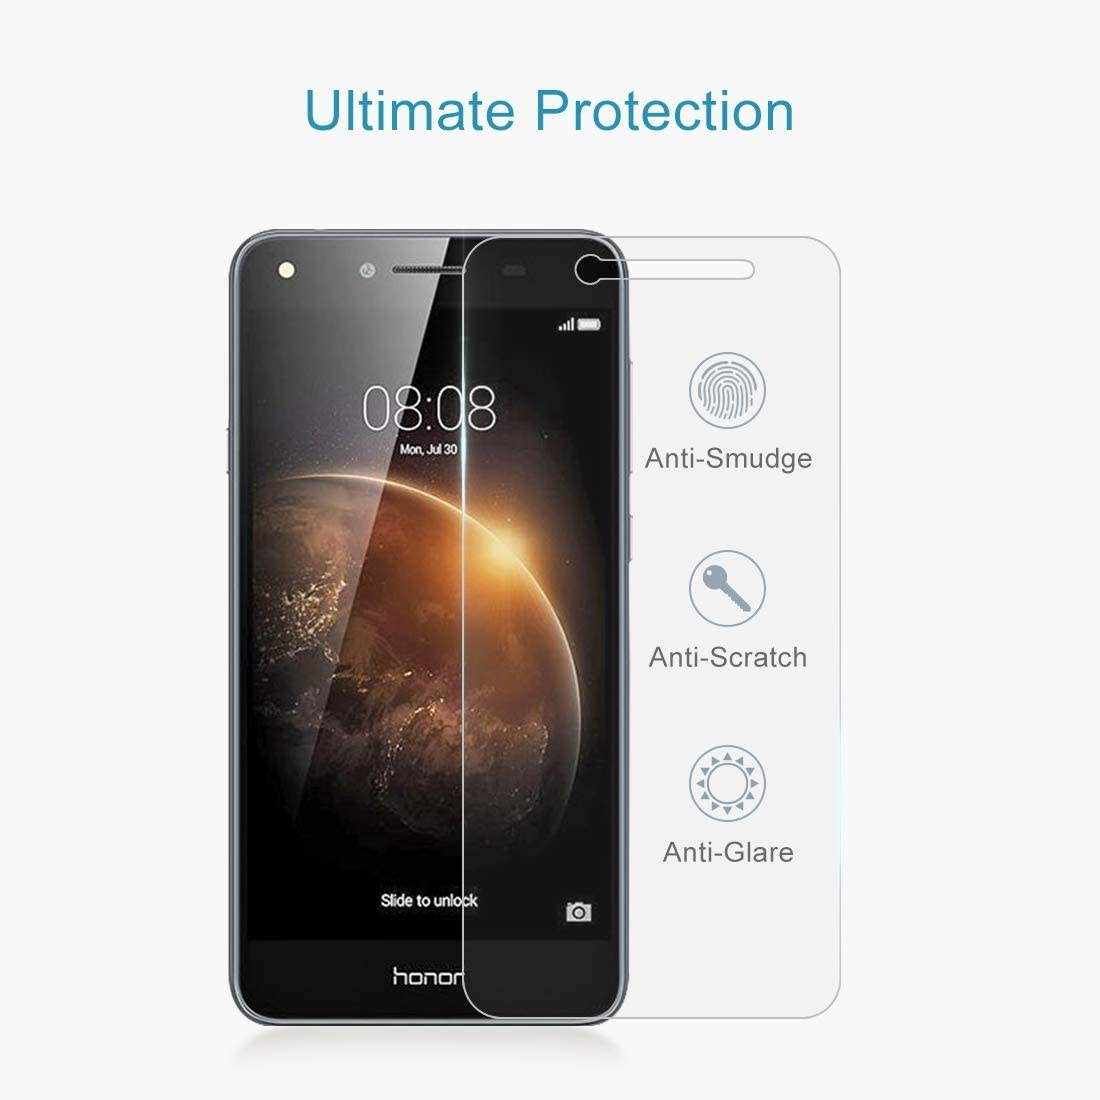 ALICEWU WJH 100 PCS 0.26mm 9H 2.5D Tempered Glass Film for Huawei Honor 5A